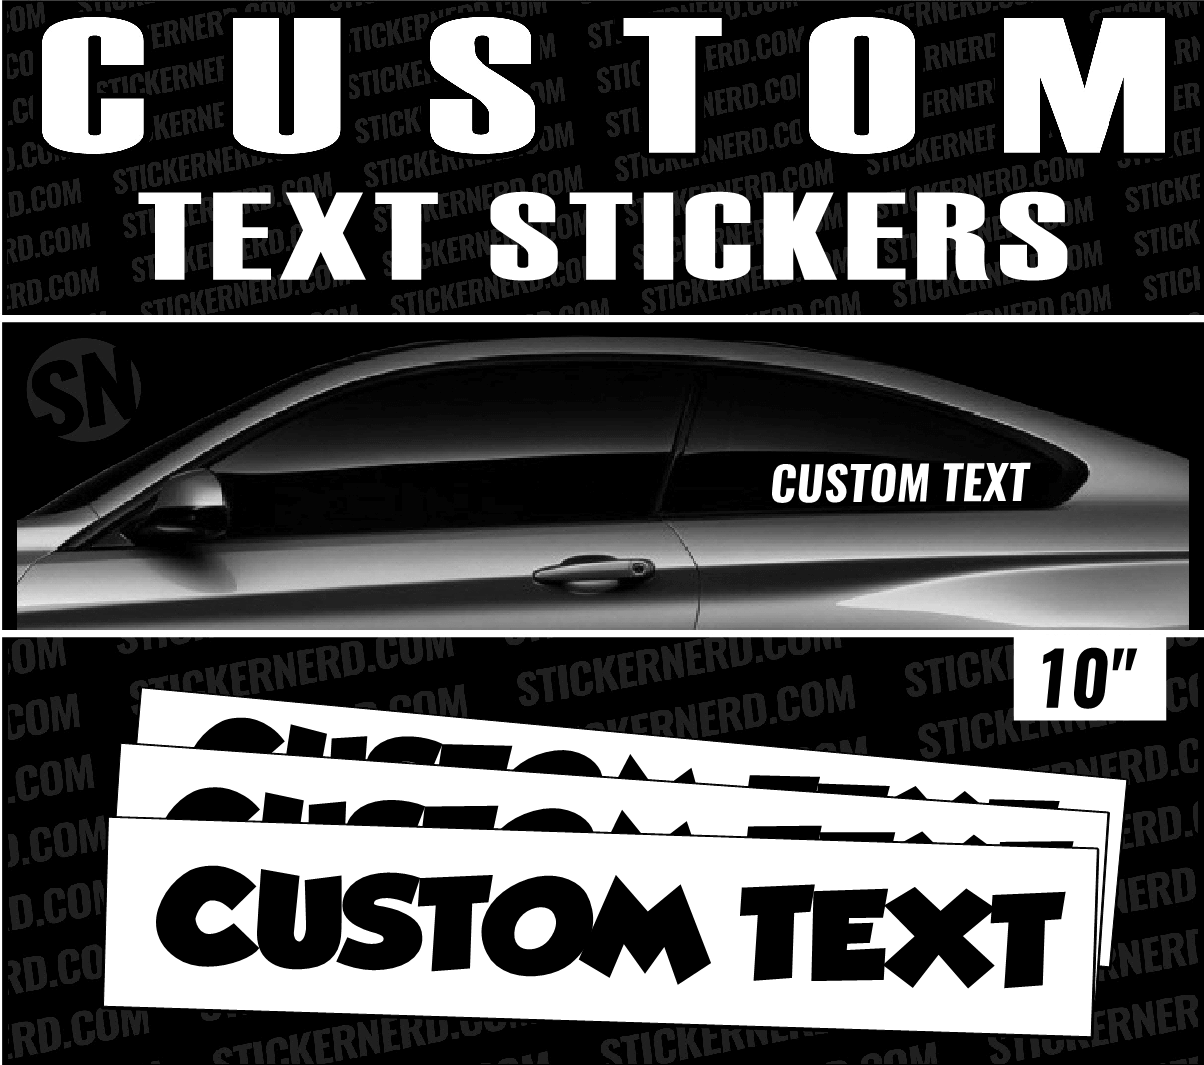 "10"" Custom Text Stickers - Window Decal - STICKERNERD.COM"